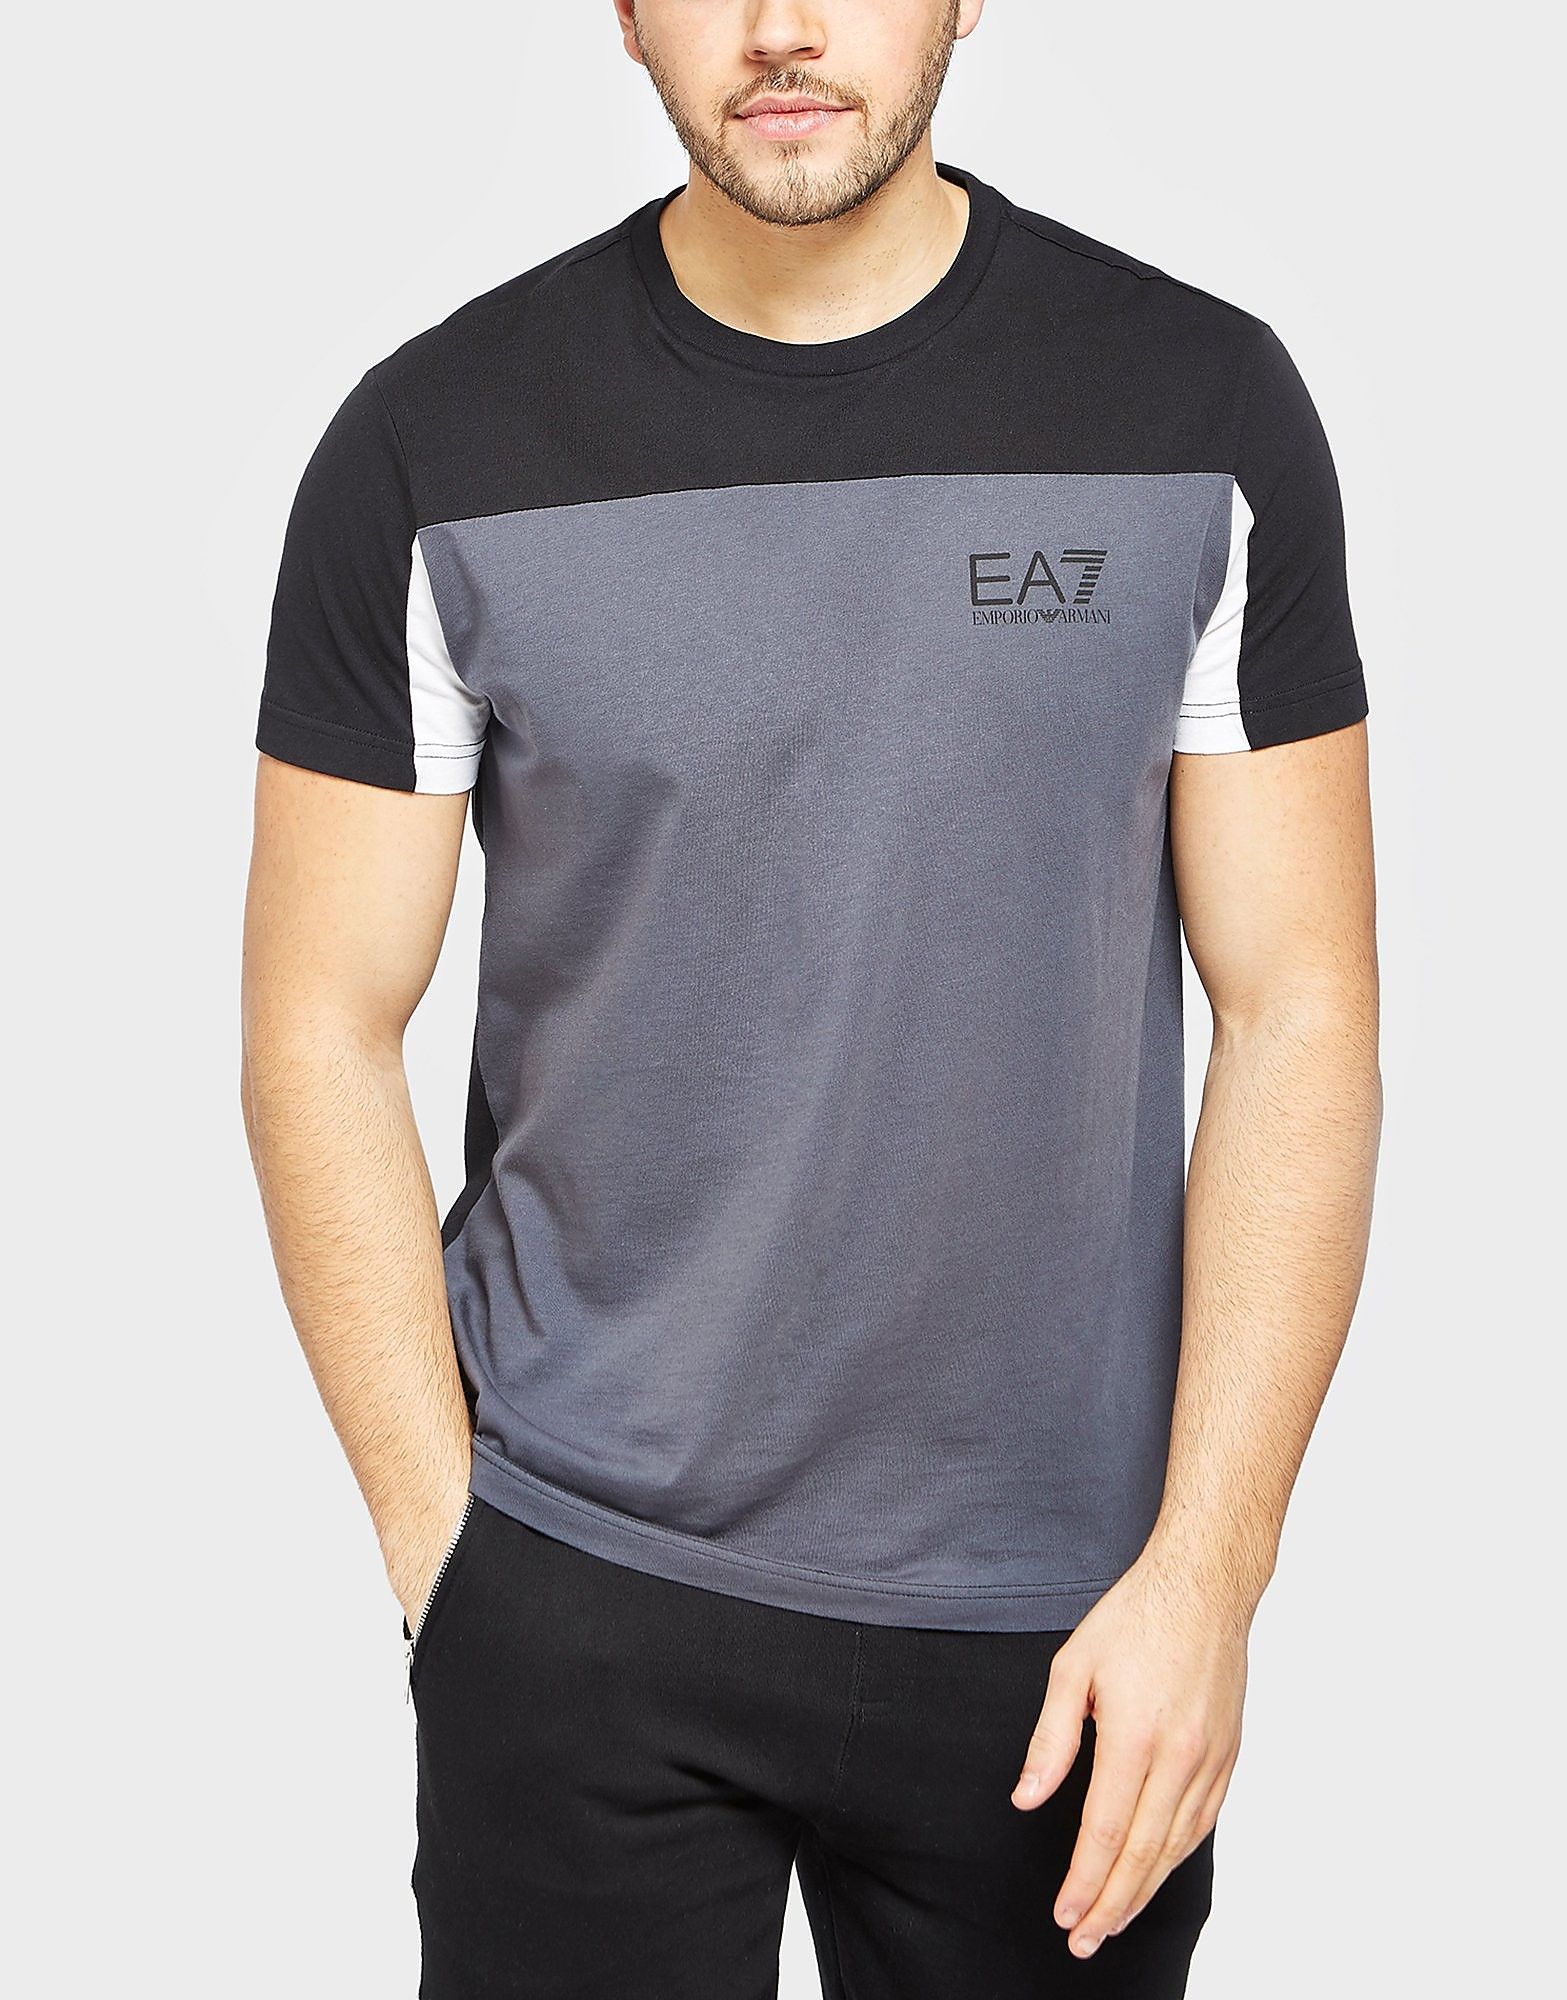 Emporio Armani EA7 Colourblock T-Shirt